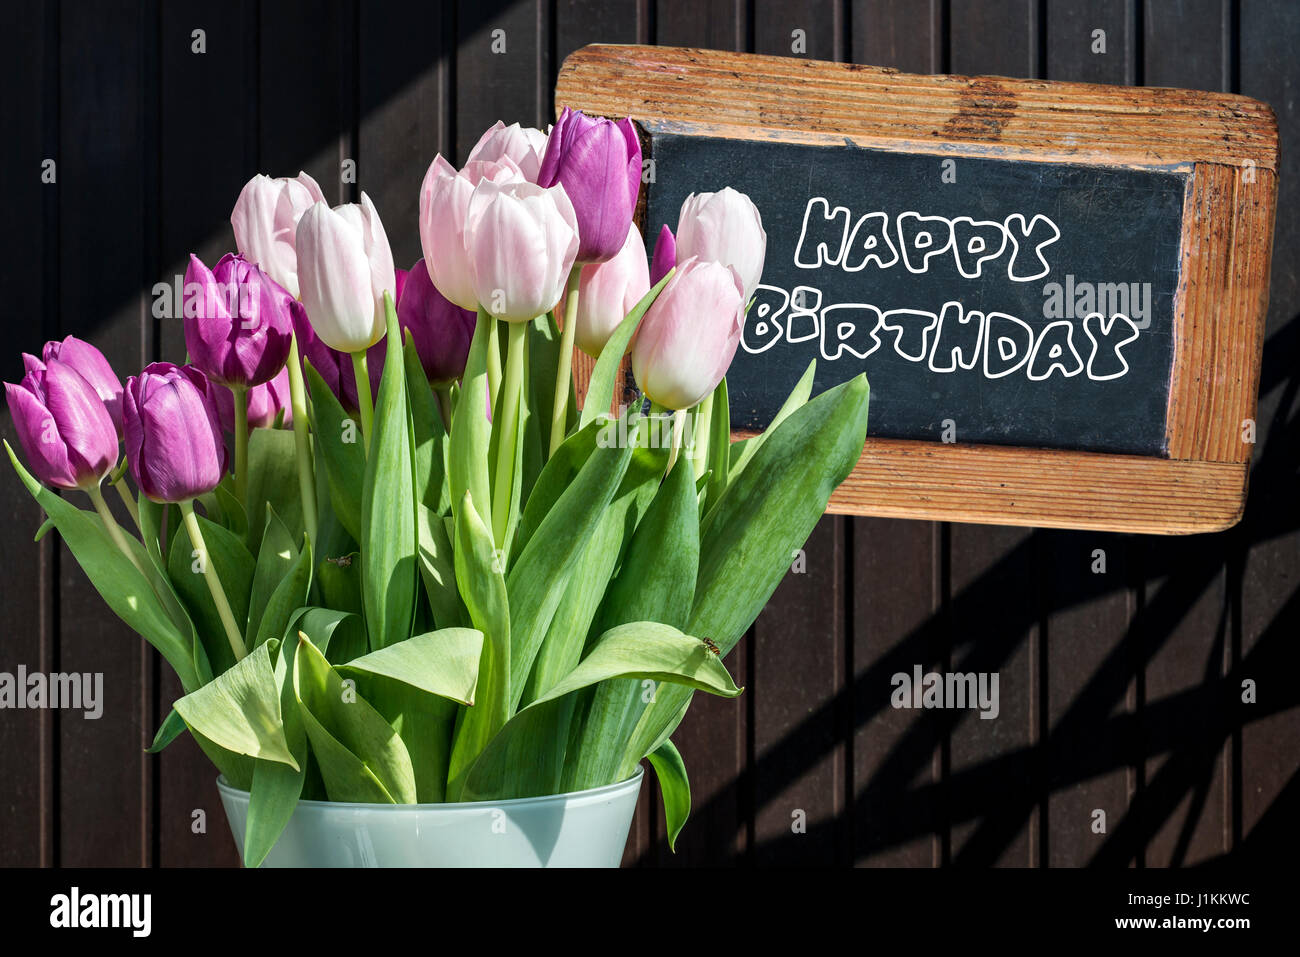 wooden flower vase design with Stock Photo Wooden Chalkboard Happy Birthday Sign With Beautiful Pink Tulips Bucket 138730296 on Creative Easter Table Decoration Ideas To Inspire You further Watch additionally P7yyw57q also Gorgeous Wooden Kitchen Furniture Units With Beautiful Island Feat Flower Vase And Pleasant Marble Top Also  pleted With Stainless Under Mount Sink further Designing The Divine Space Prayer Pooja Room.